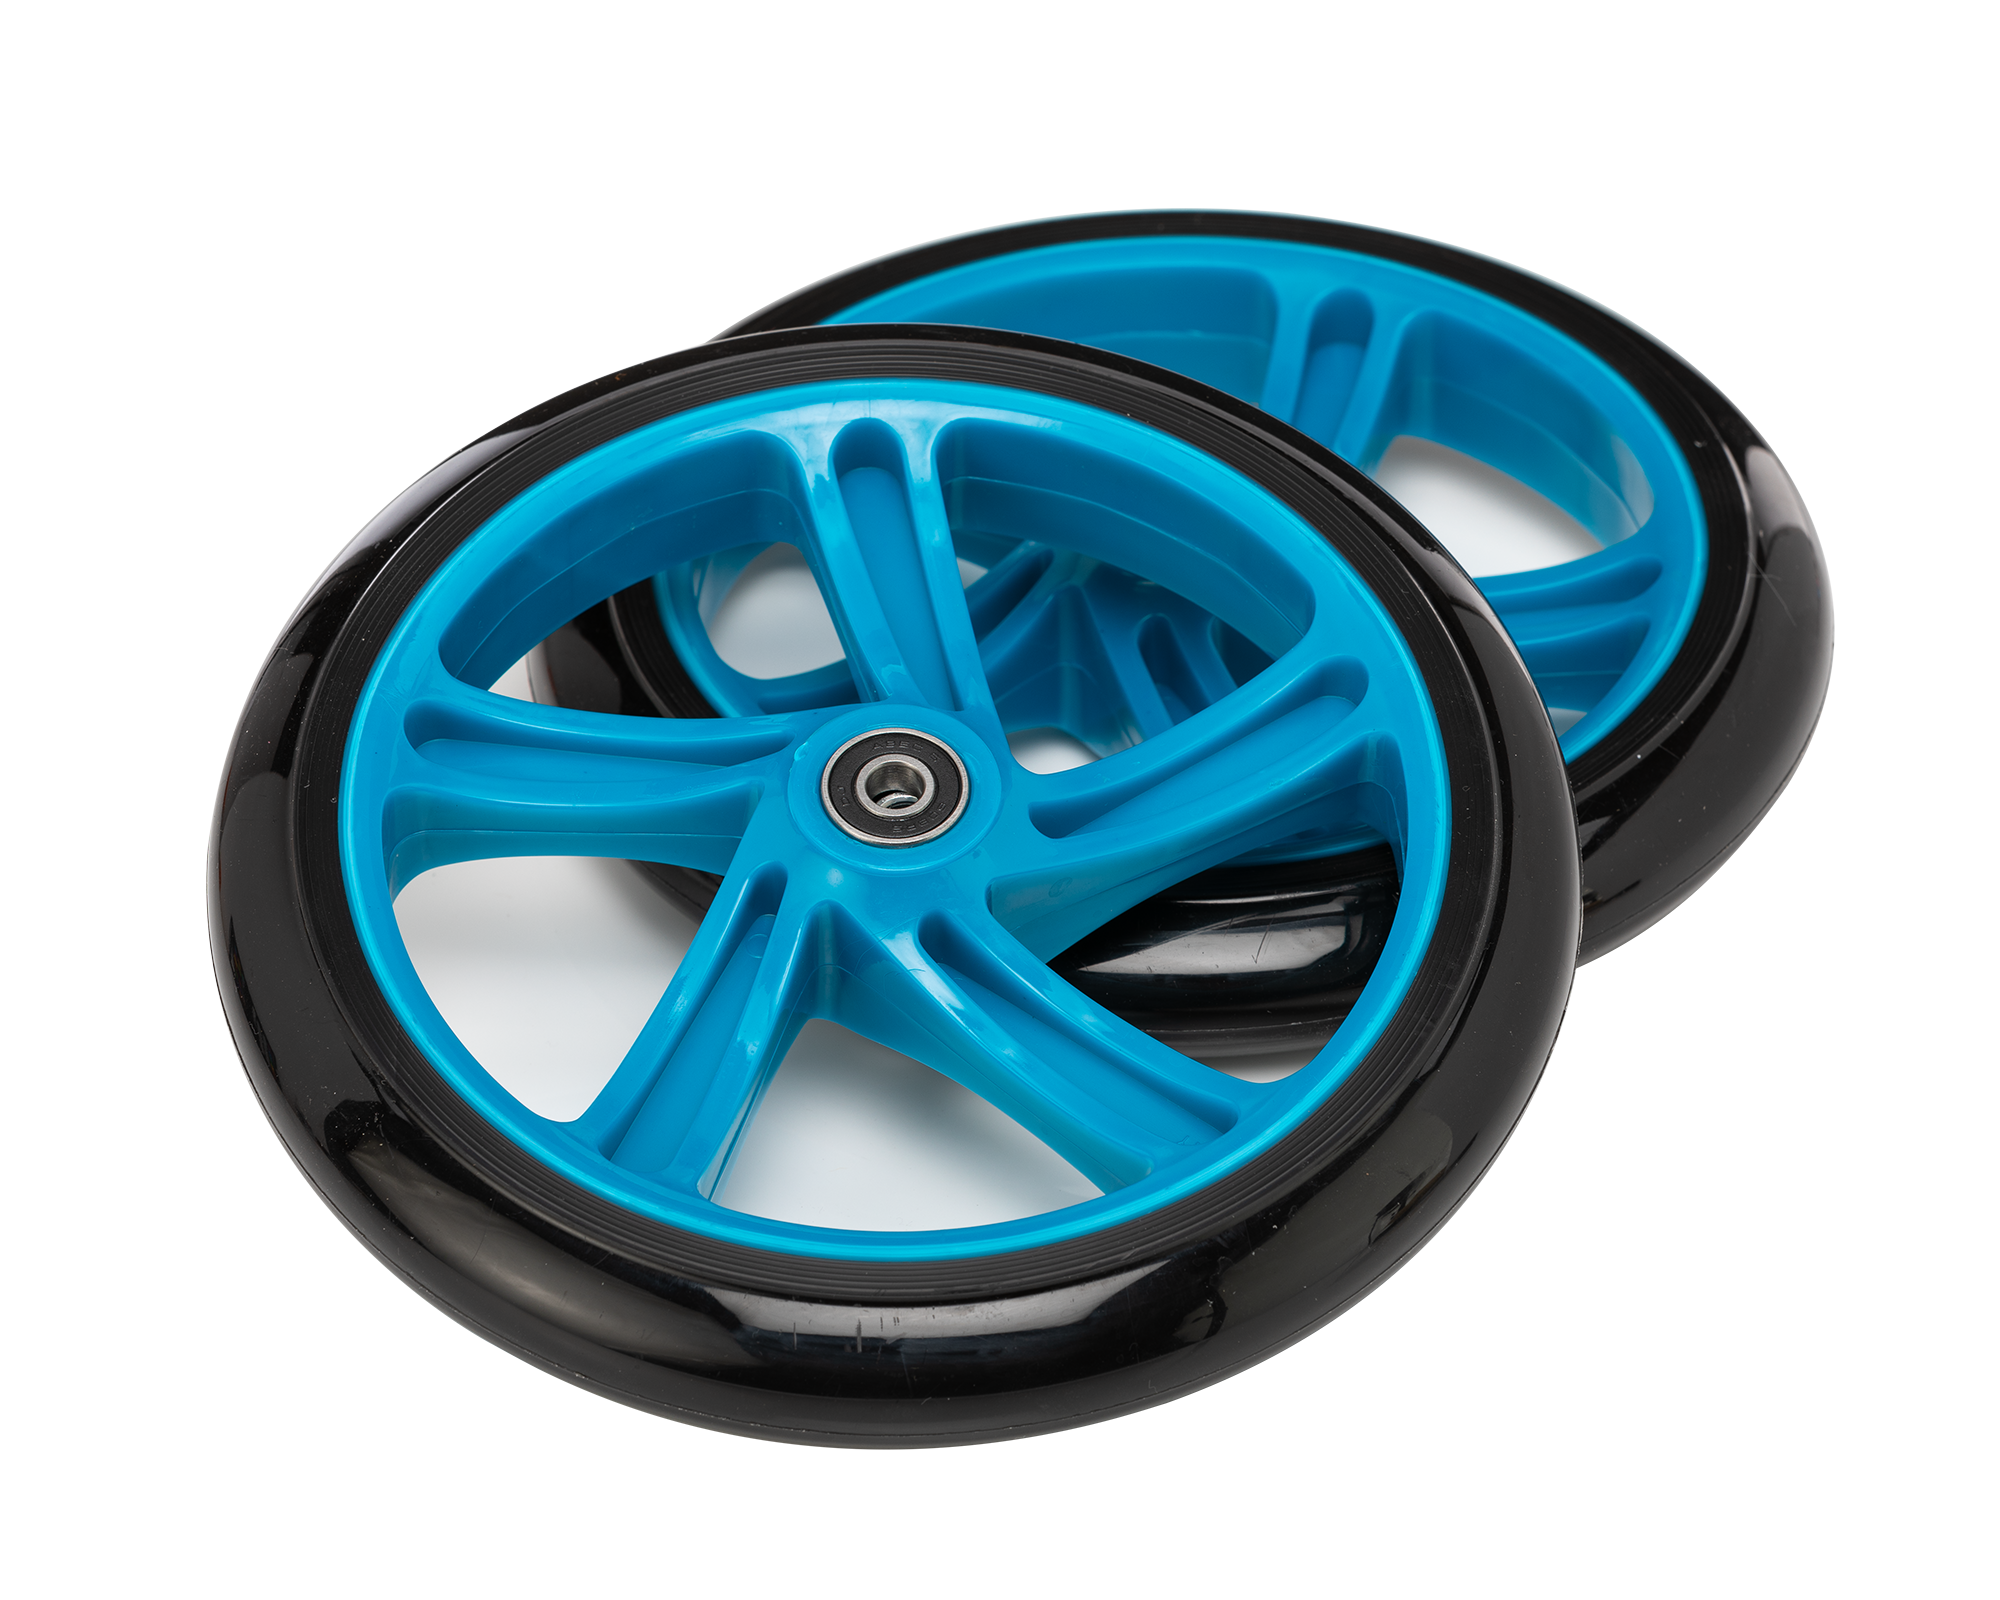 Razor Scooter A5 Lux 200mm Wheels - Blue - W13013240058